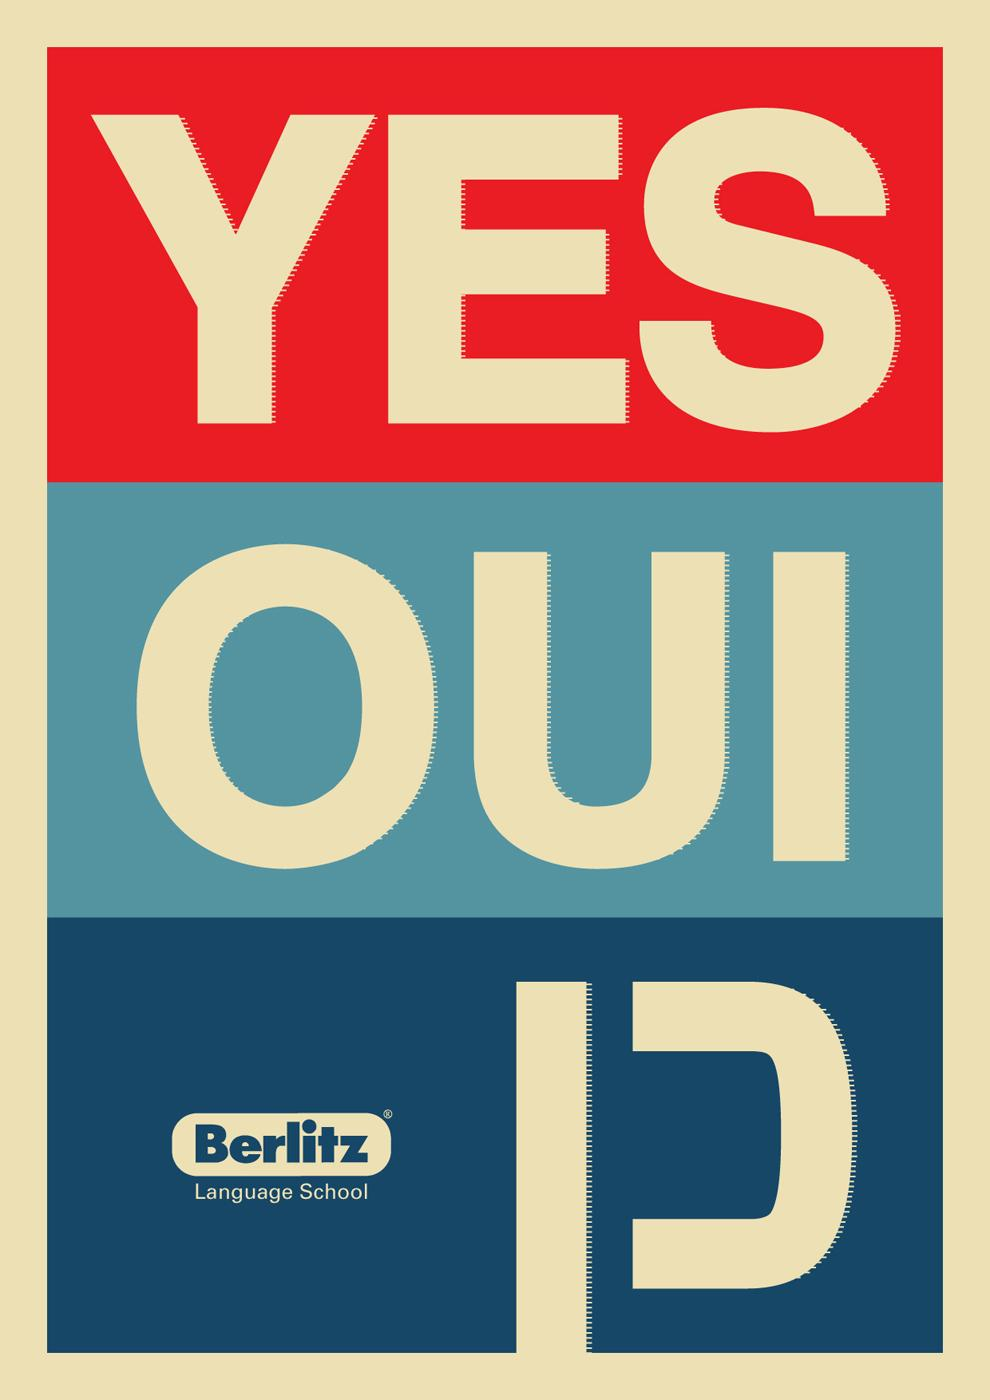 Berlitz Print Ad -  Yes we can